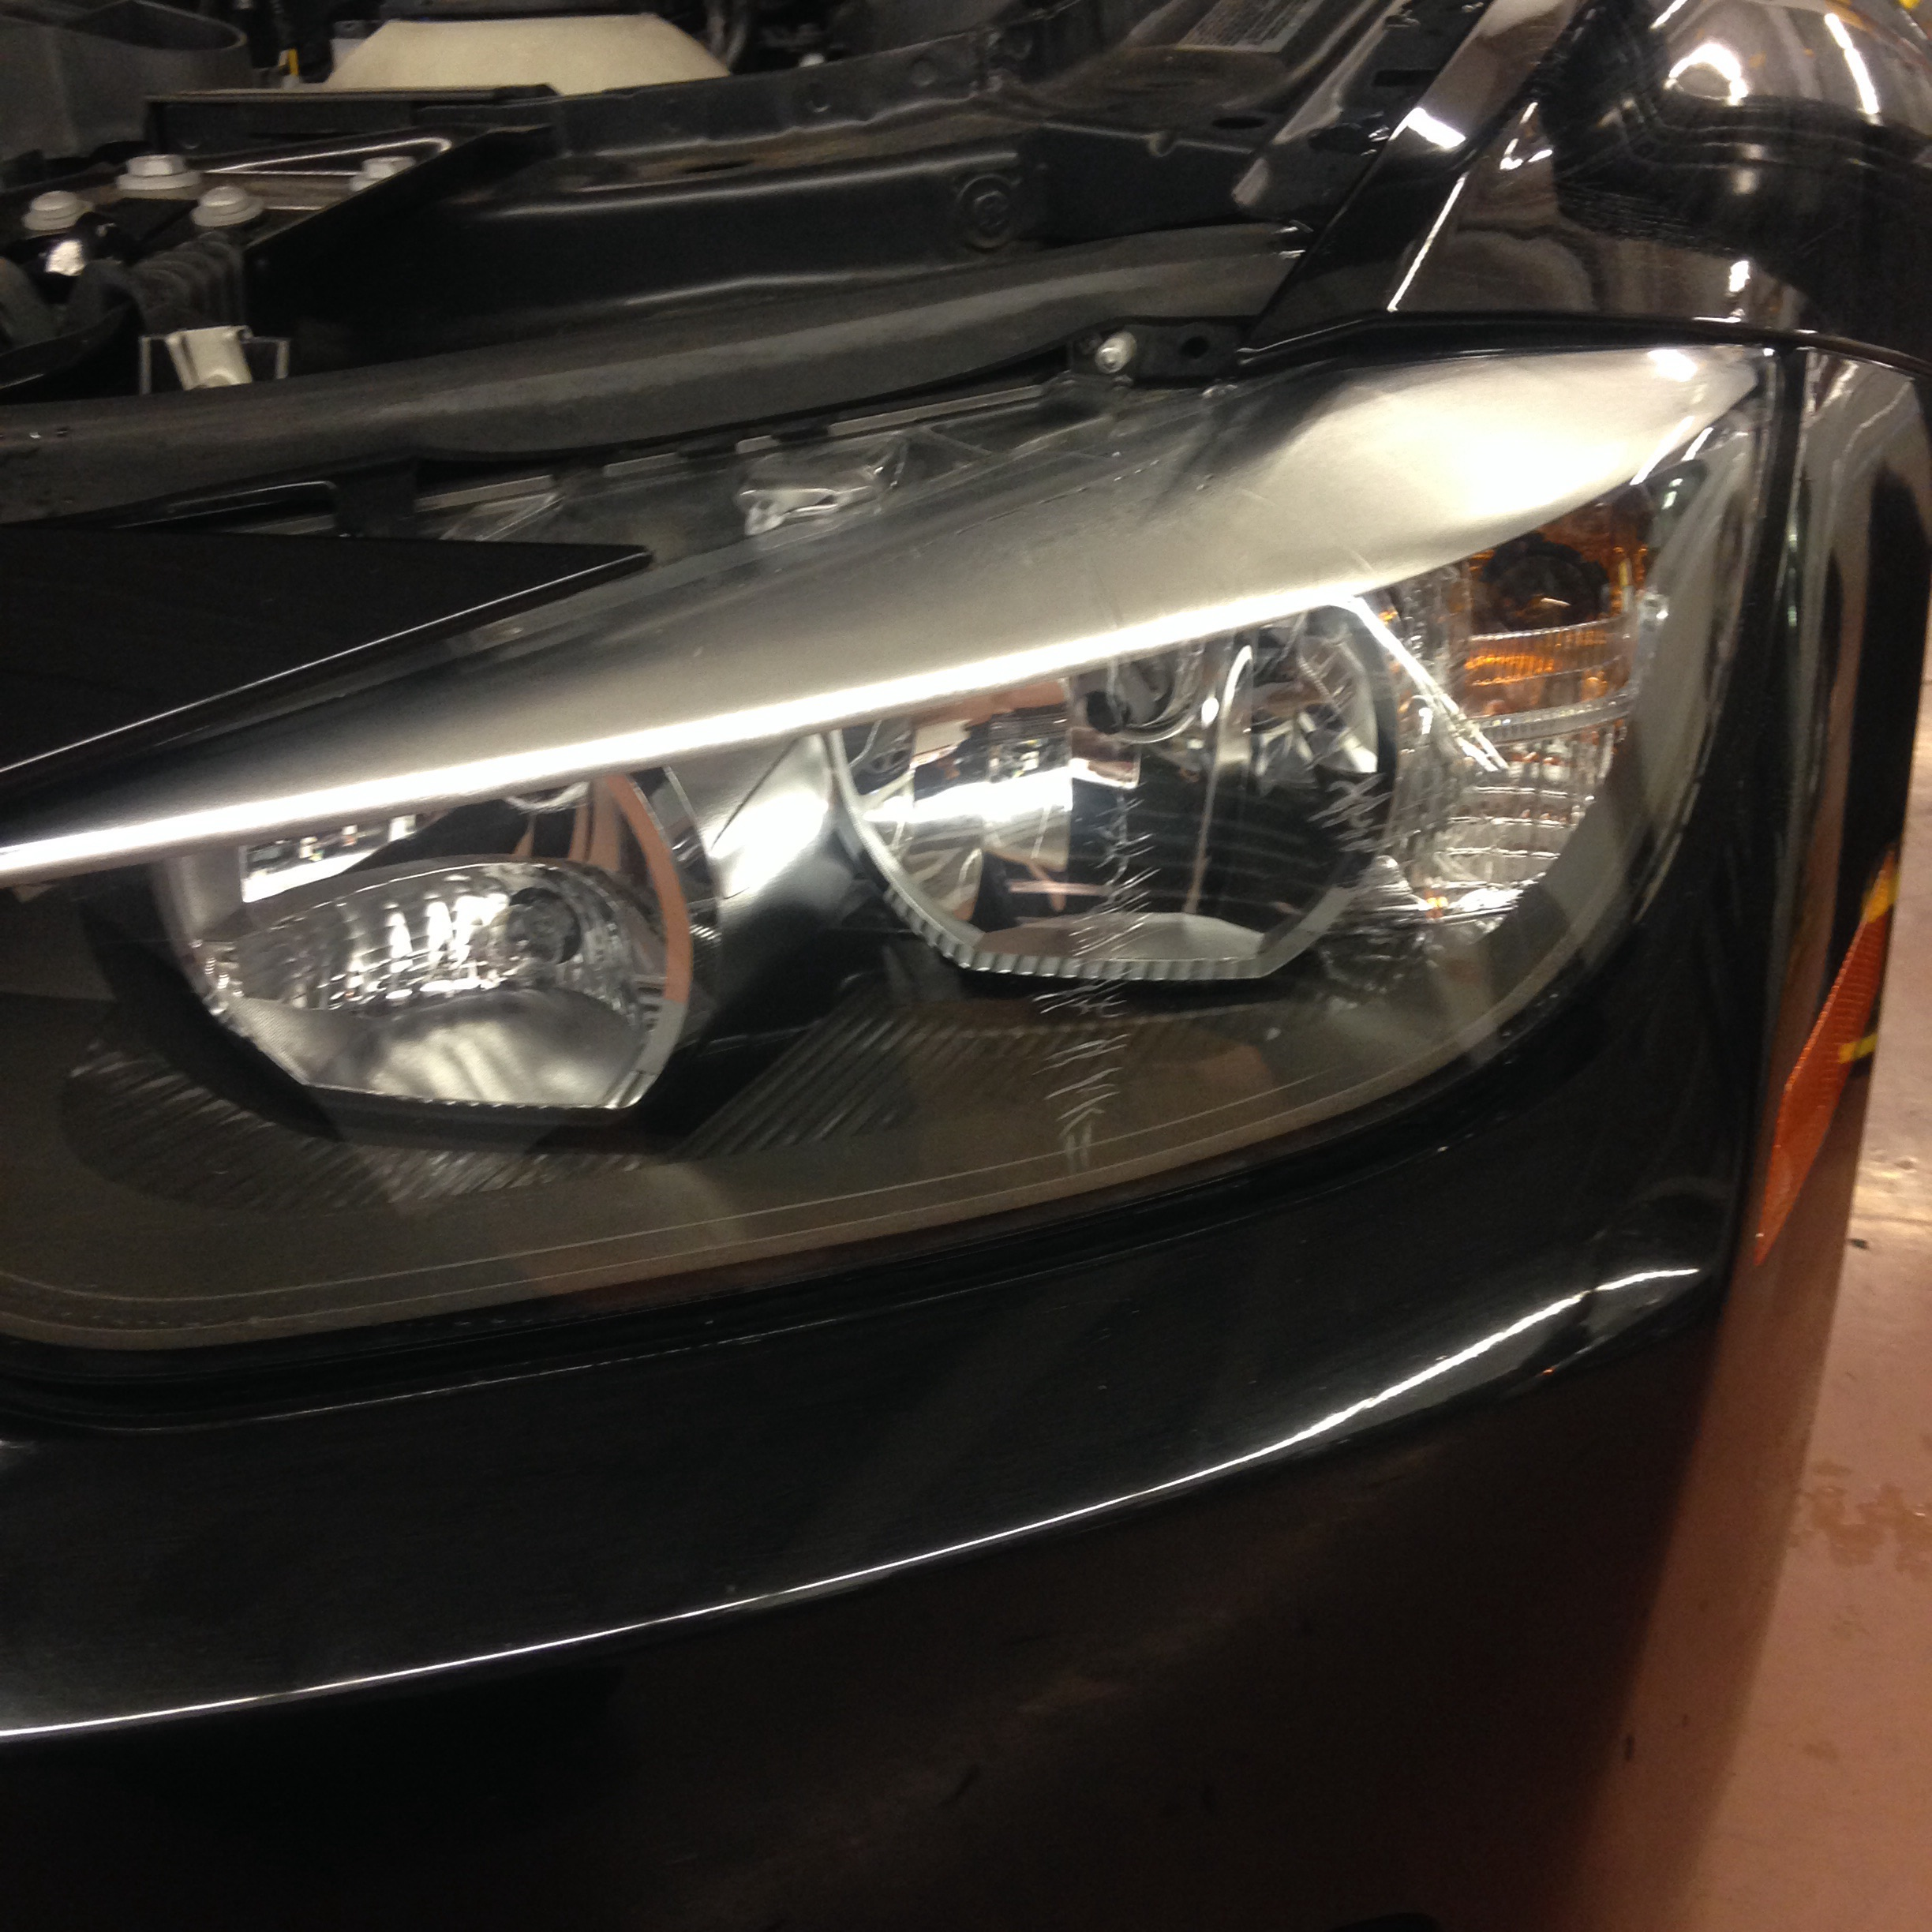 F30 328 cracked headlight | bmwtechnician